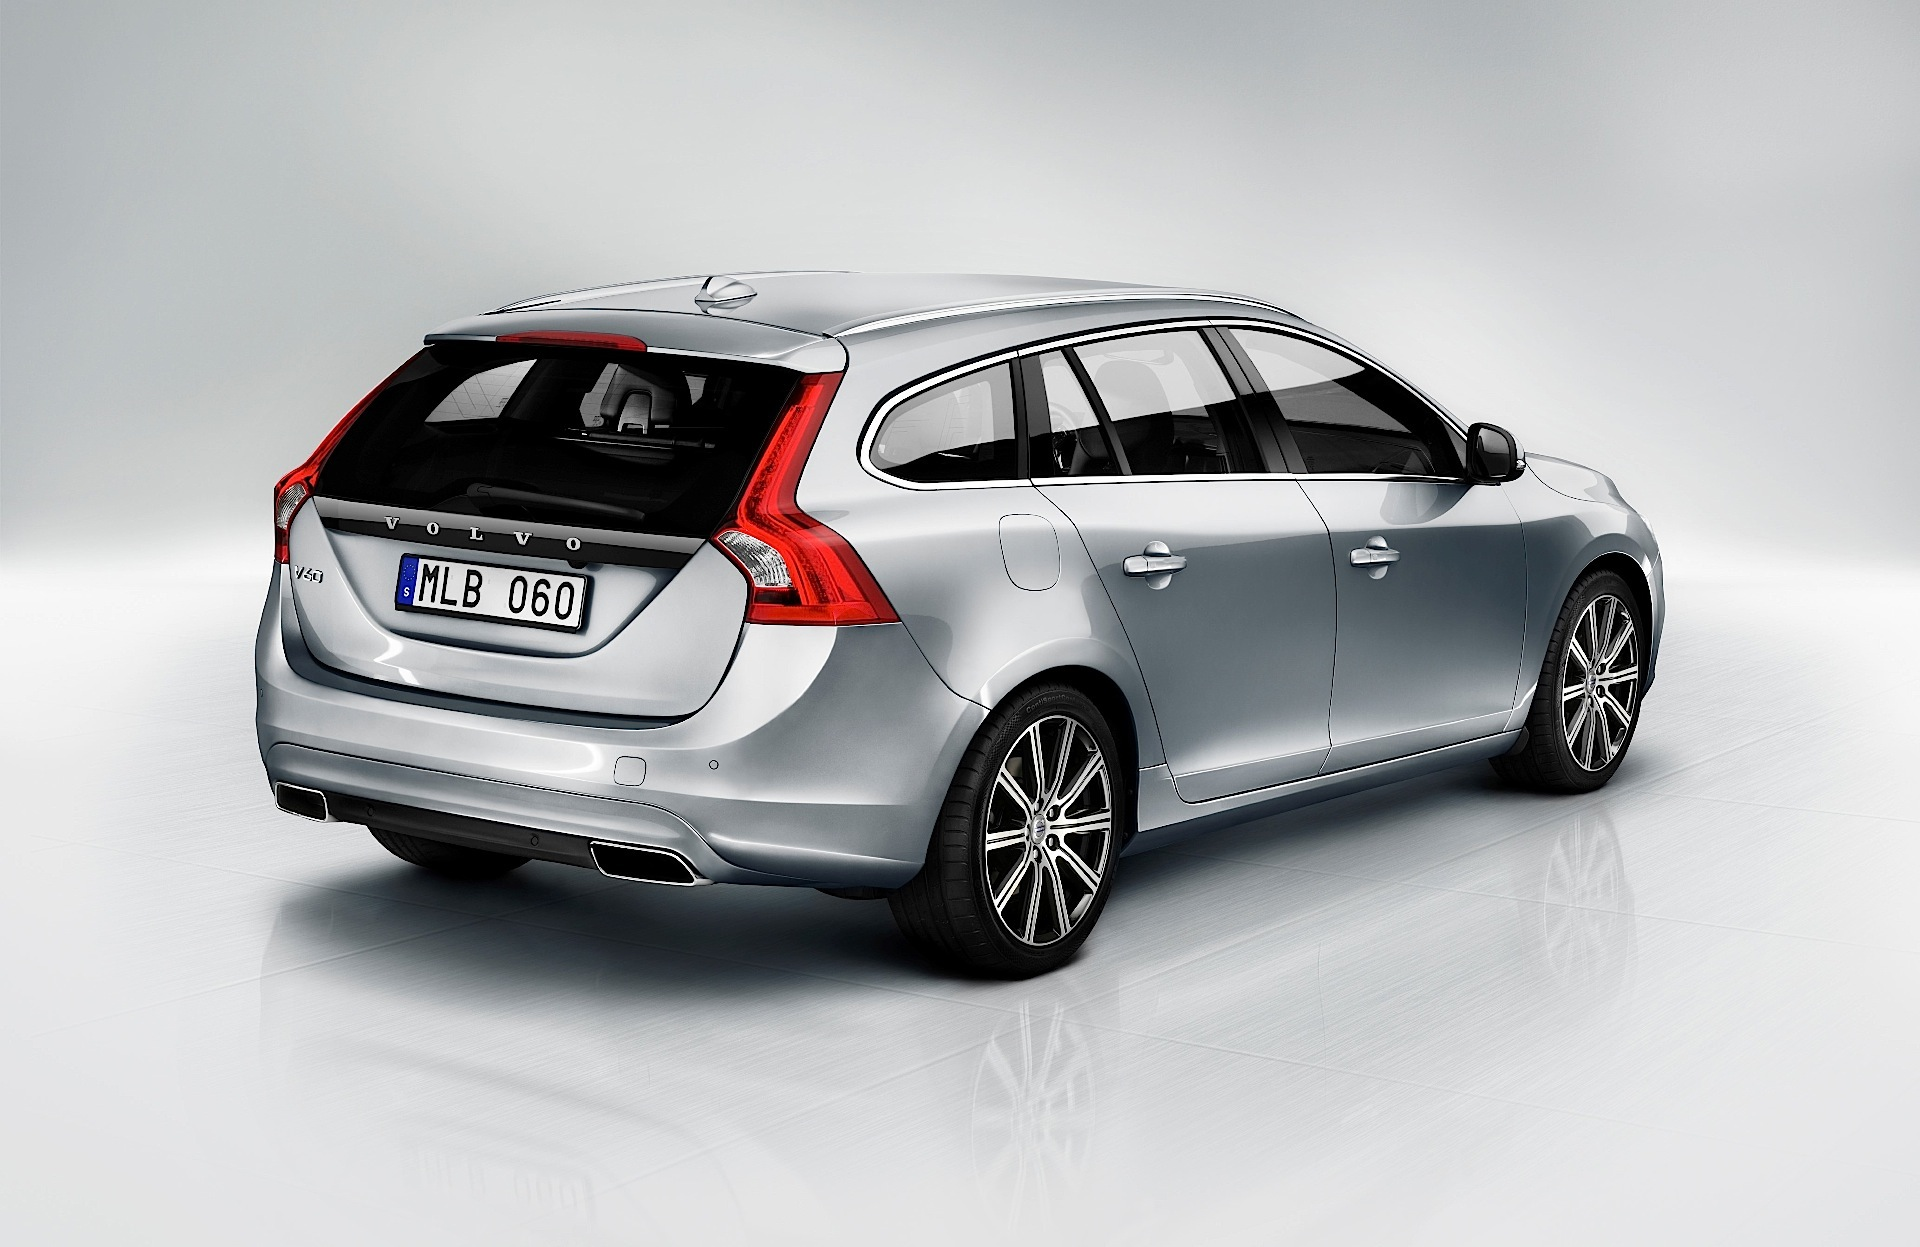 volvo v60 specs photos 2014 2015 2016 2017 2018 autoevolution. Black Bedroom Furniture Sets. Home Design Ideas